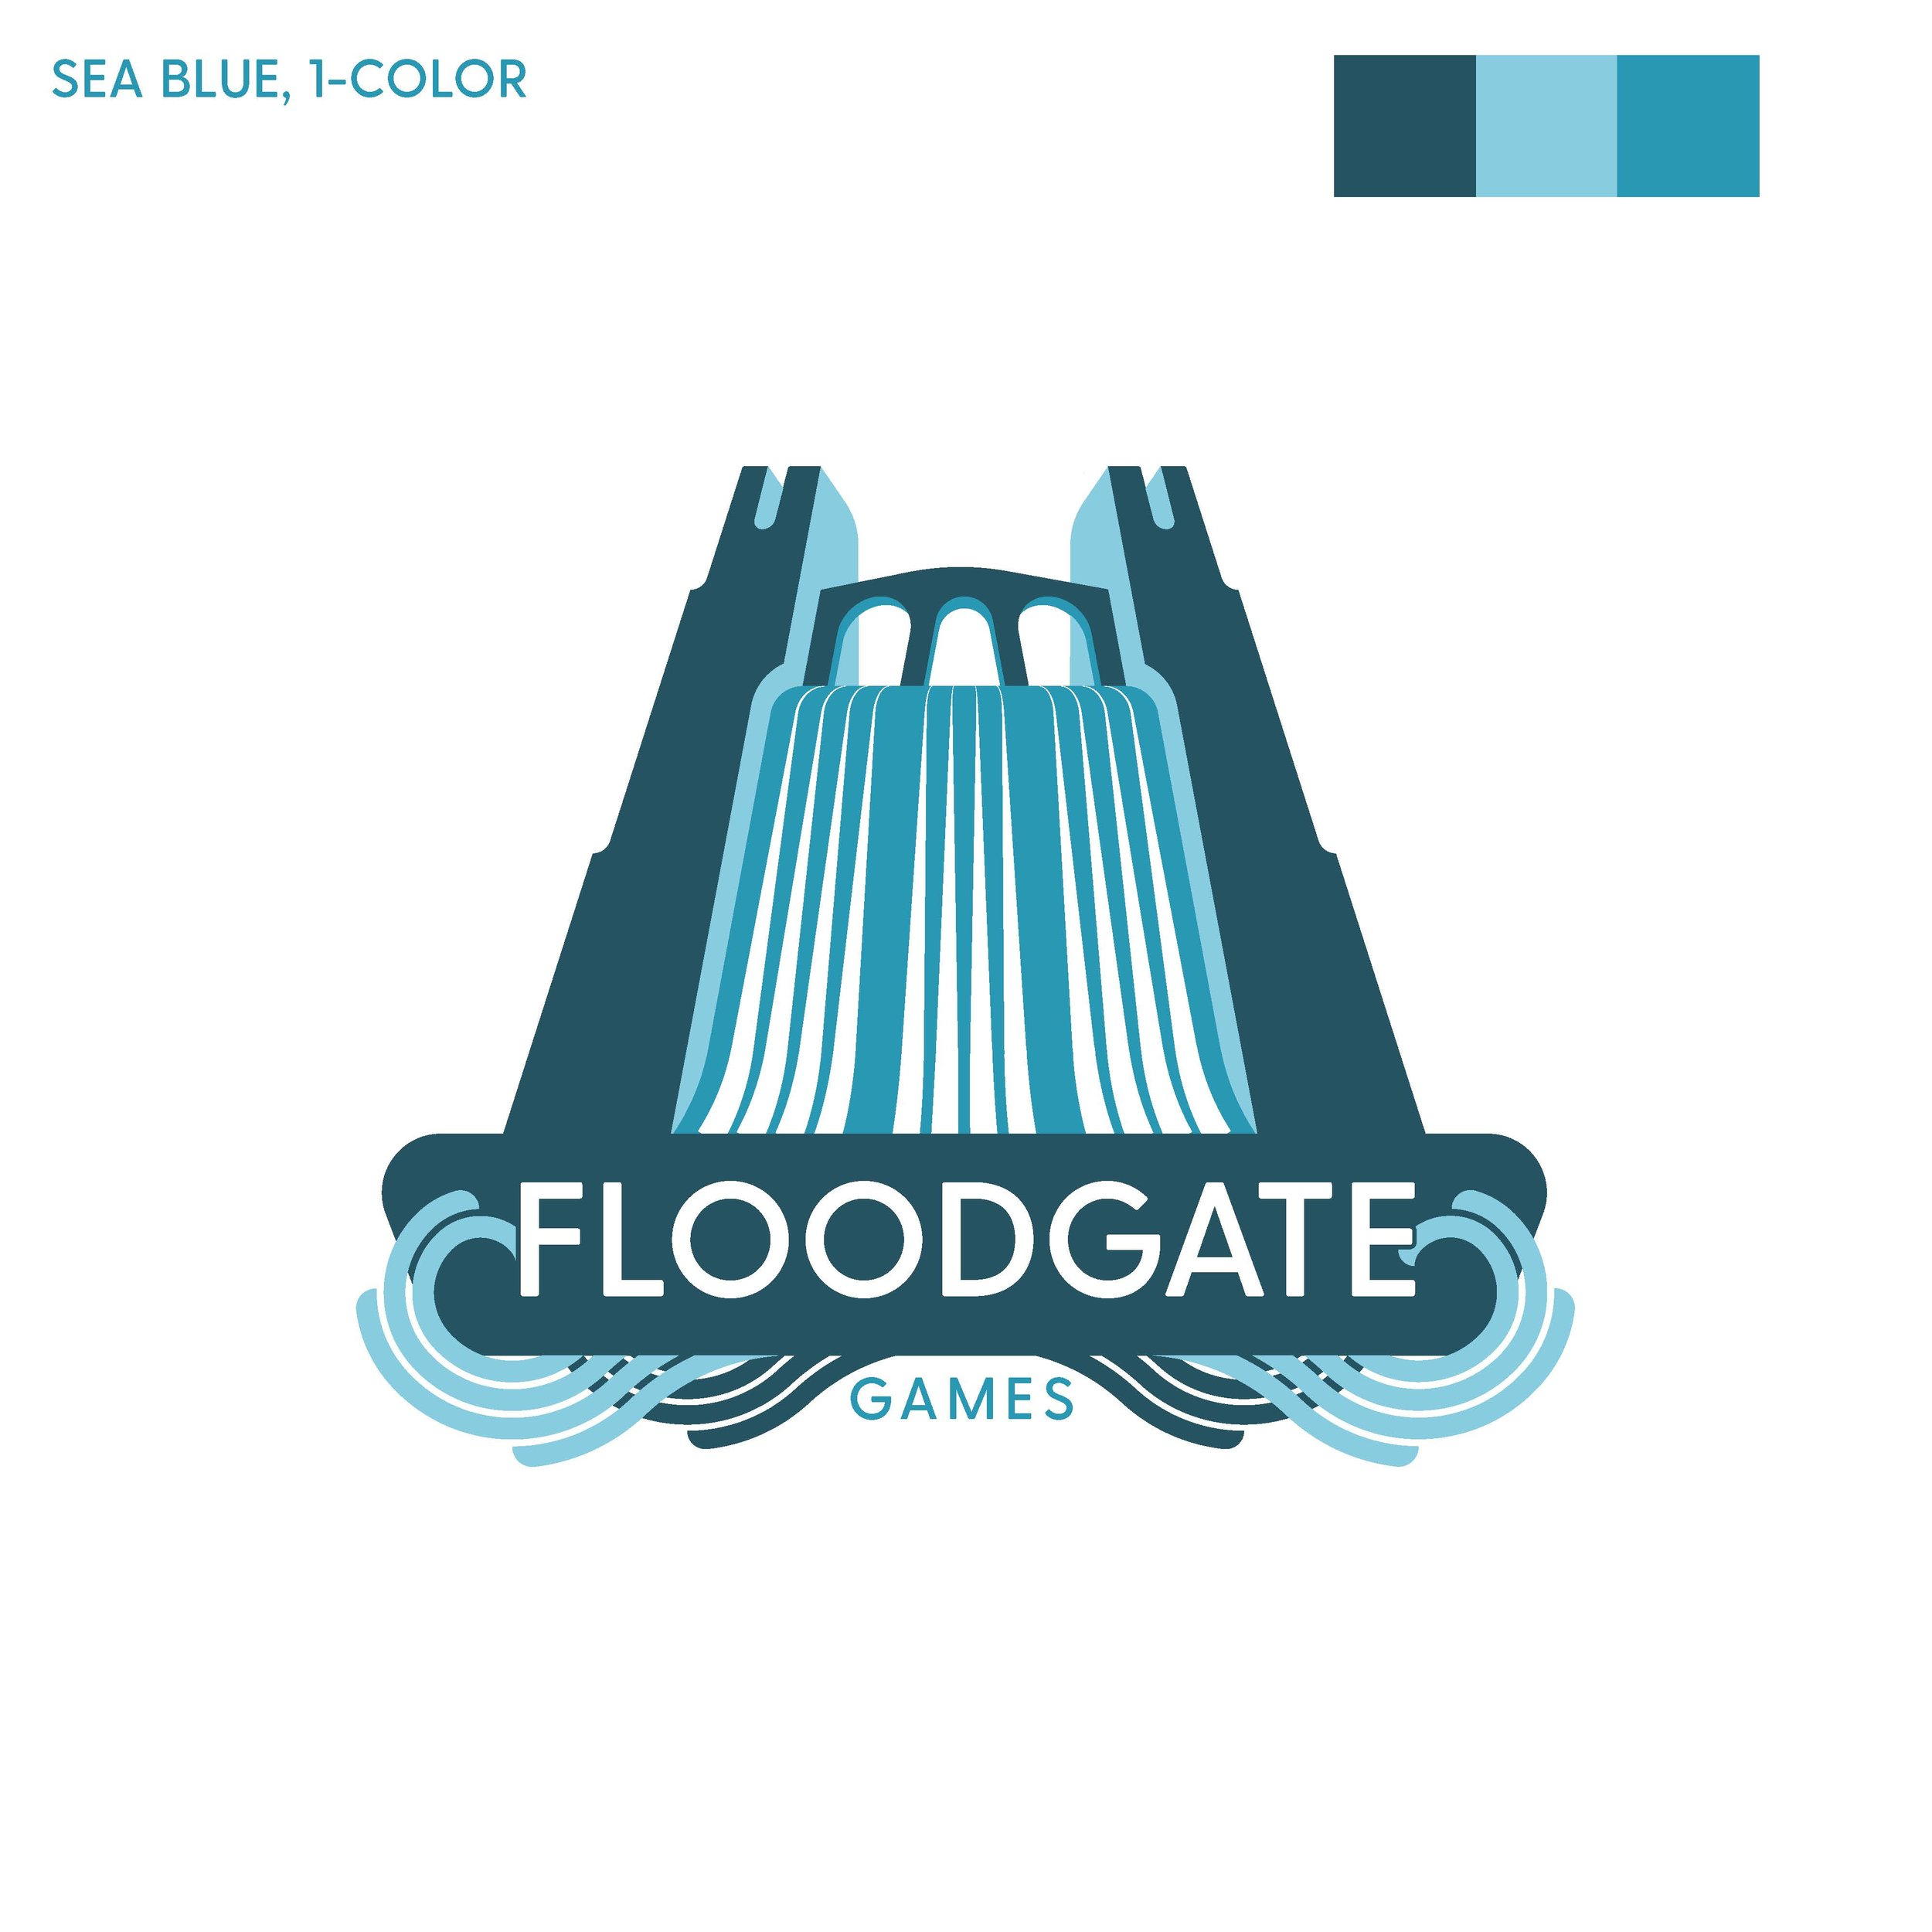 Floodgate_Logo2_V6_COLORS_Page_02.jpg